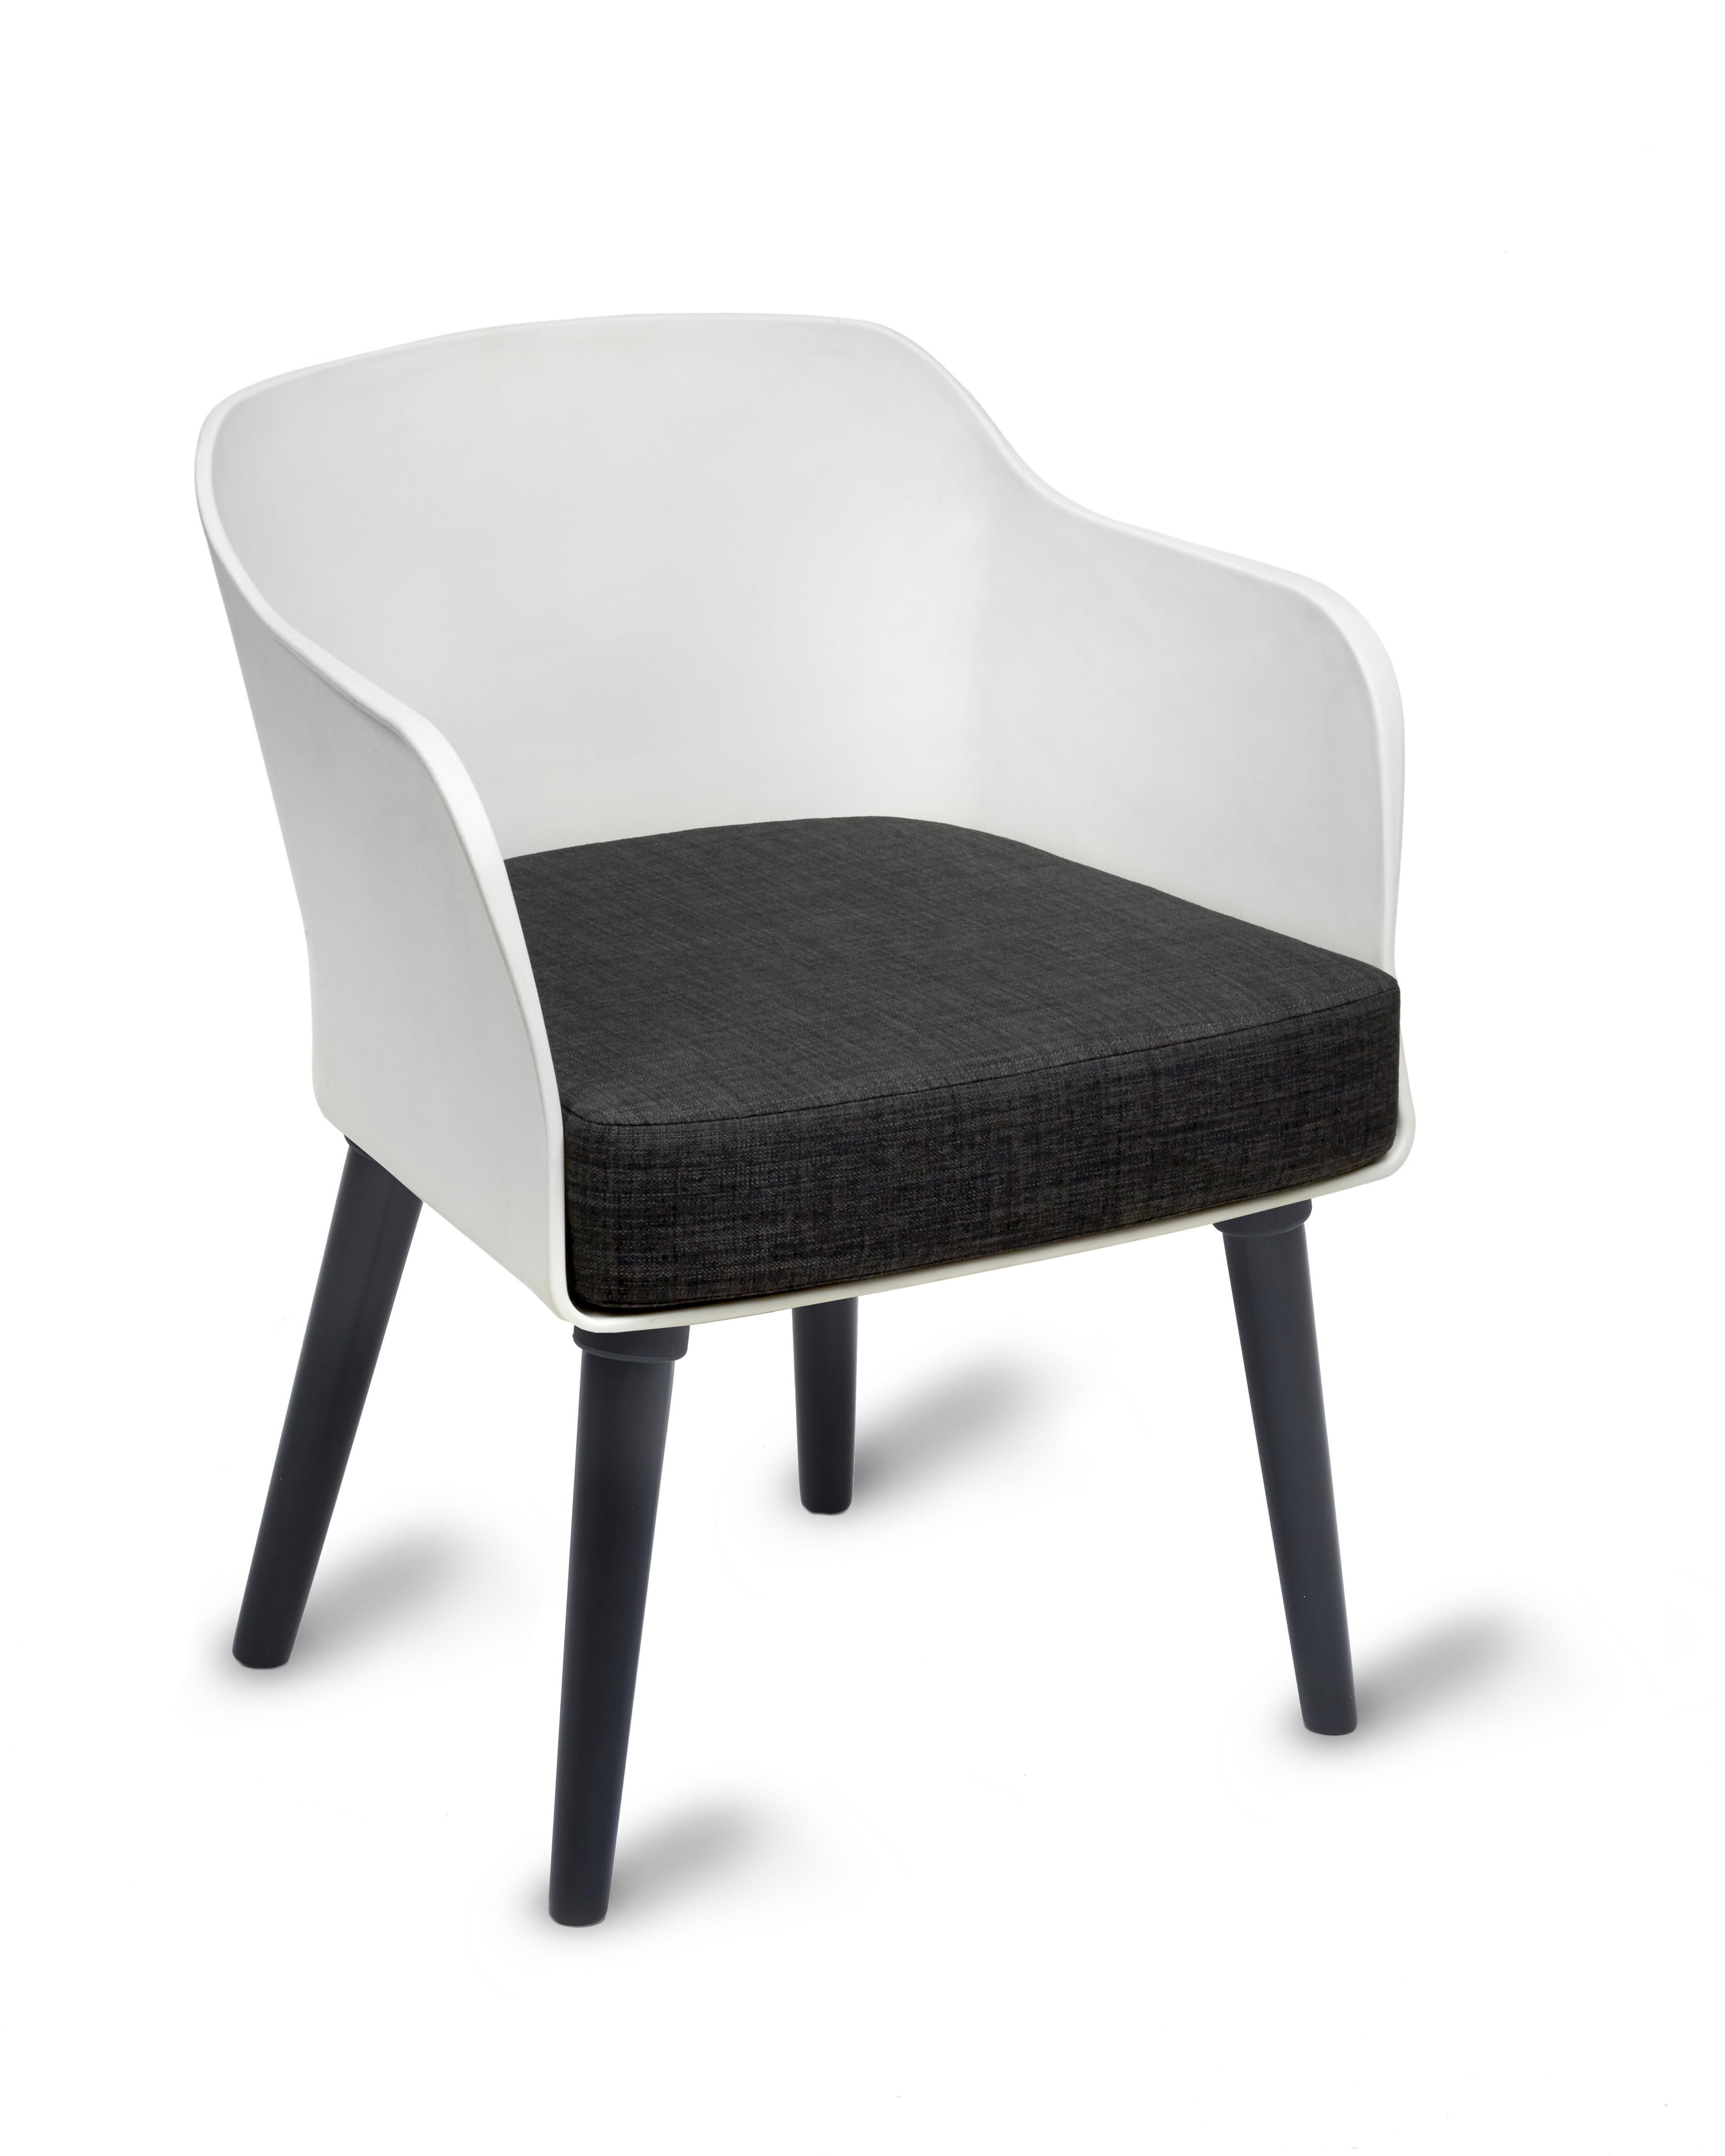 Mari Cafe/Dining Tub Chair - Simply Tables & Chairs